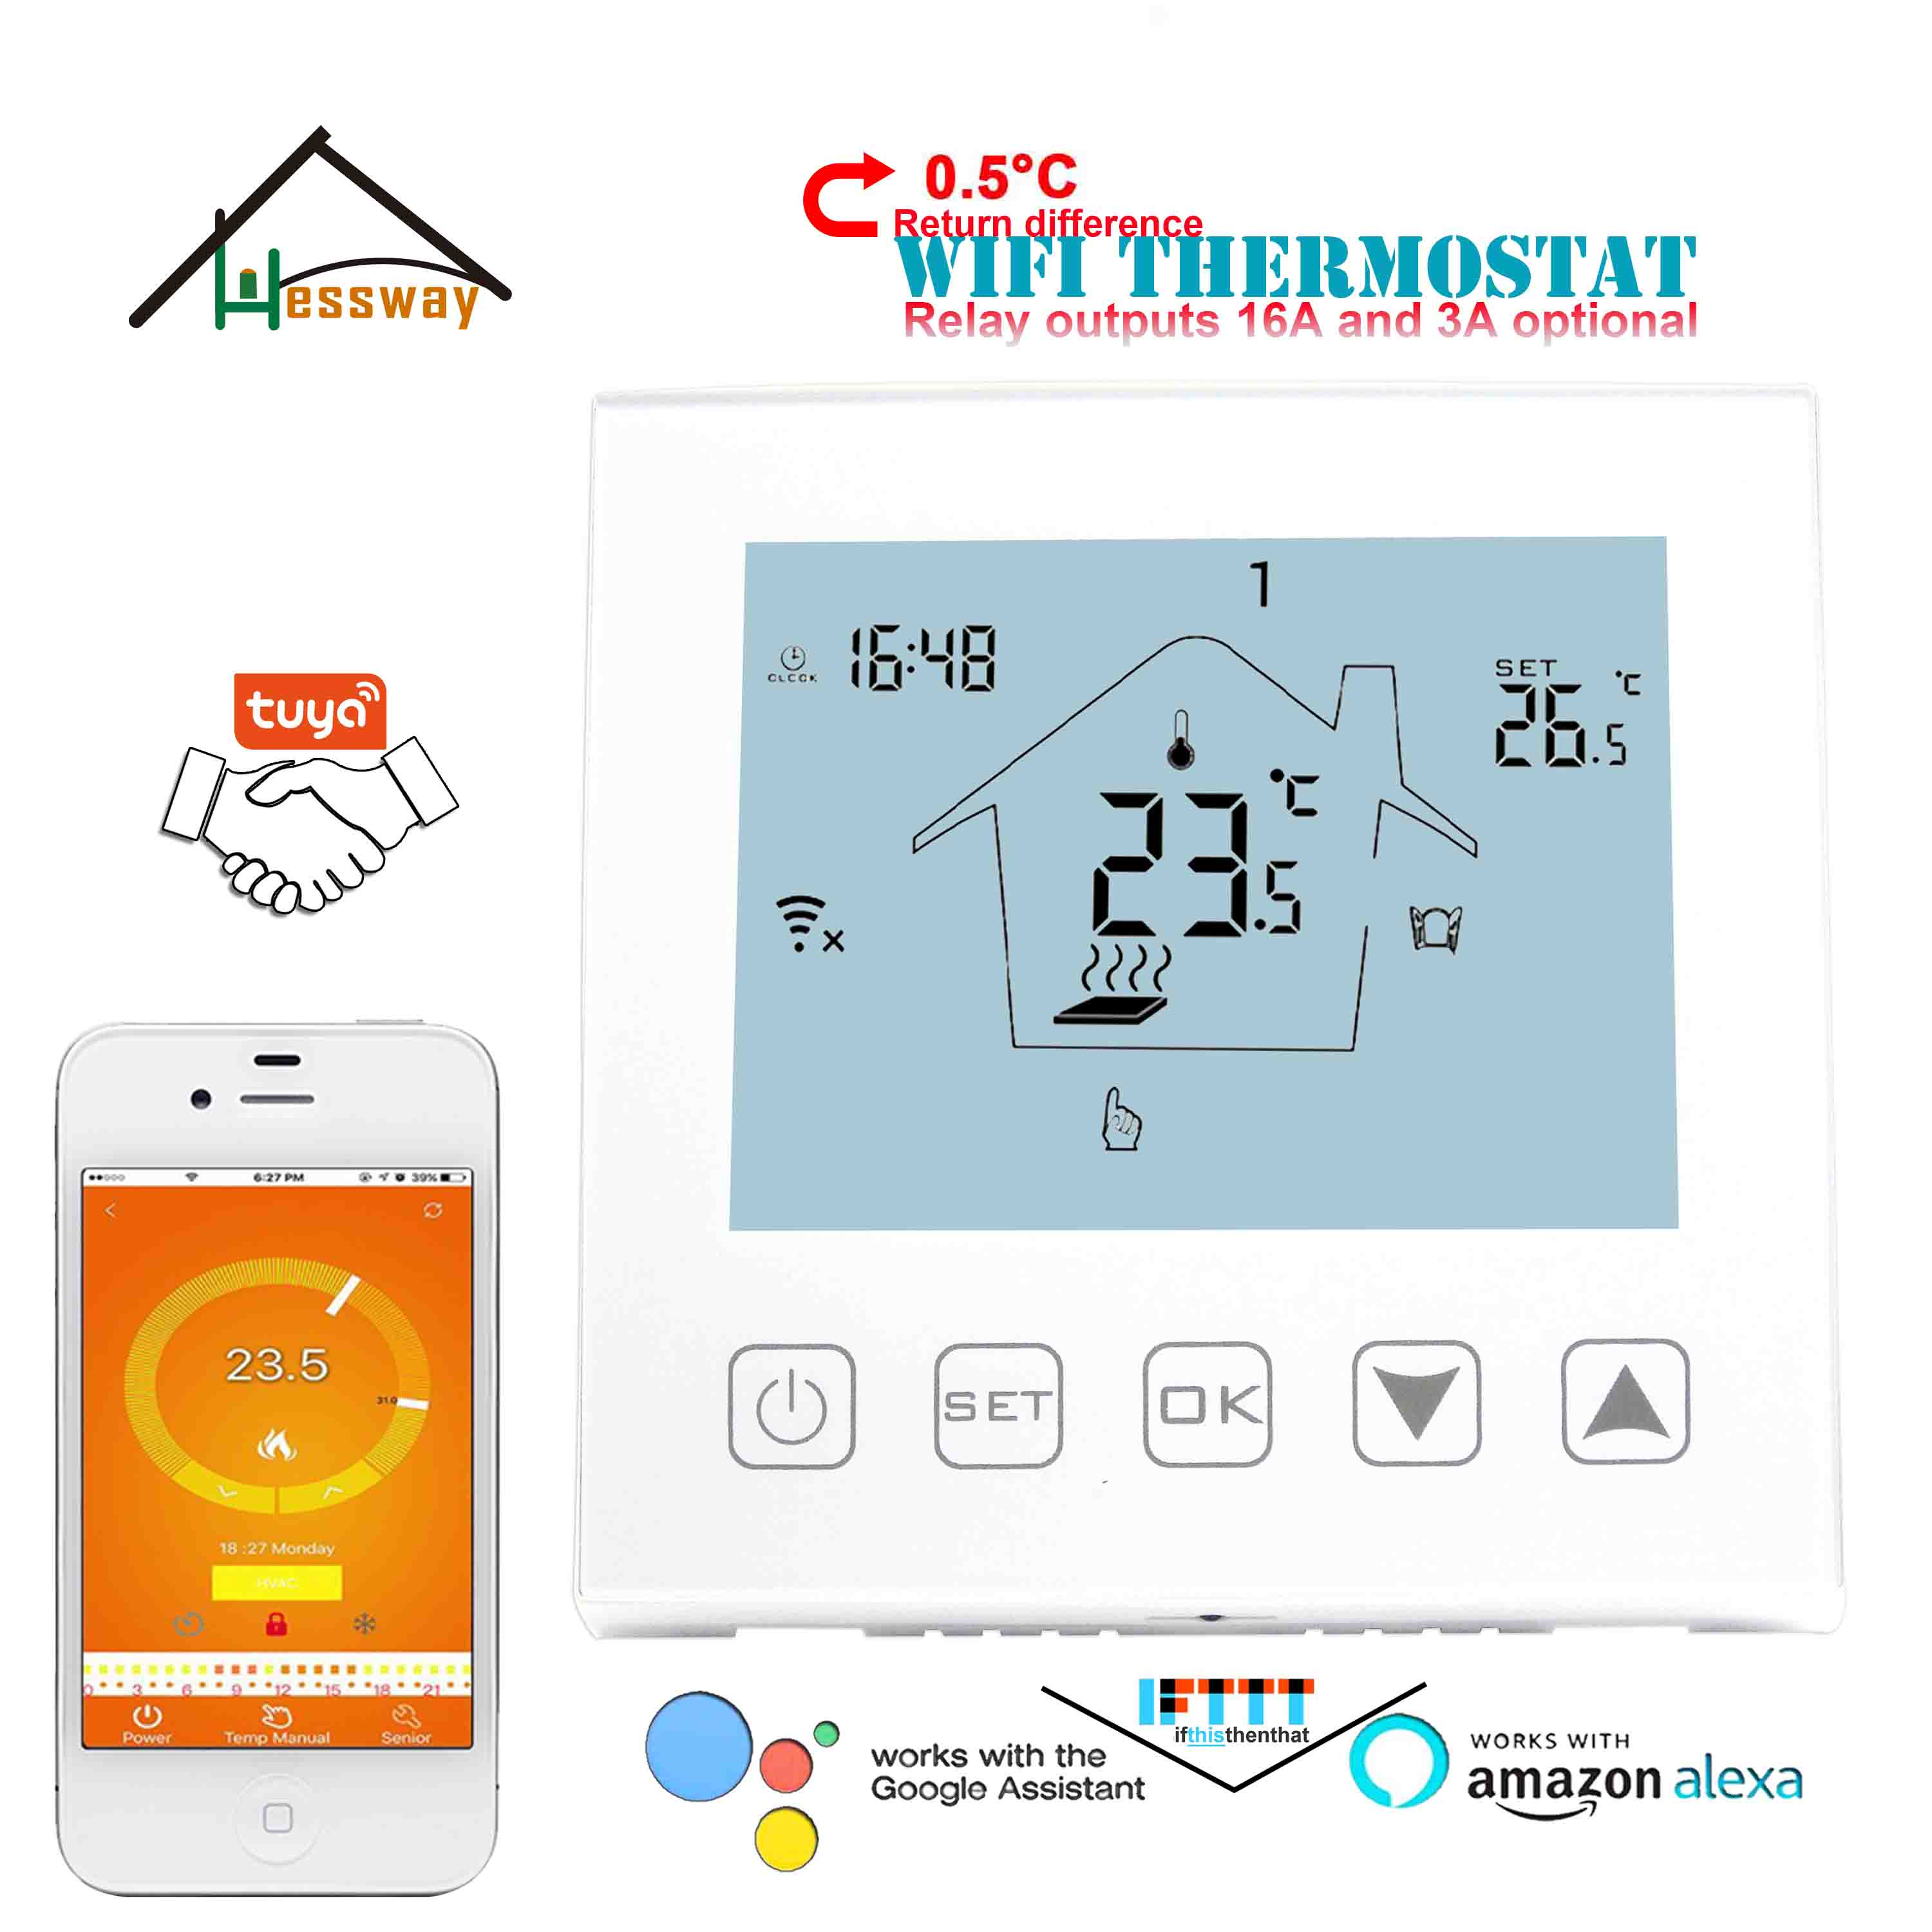 HESSWAY Radiant Floor Heating TUYA WIFI THERMOSTAT For 3A/16A Relay Switch